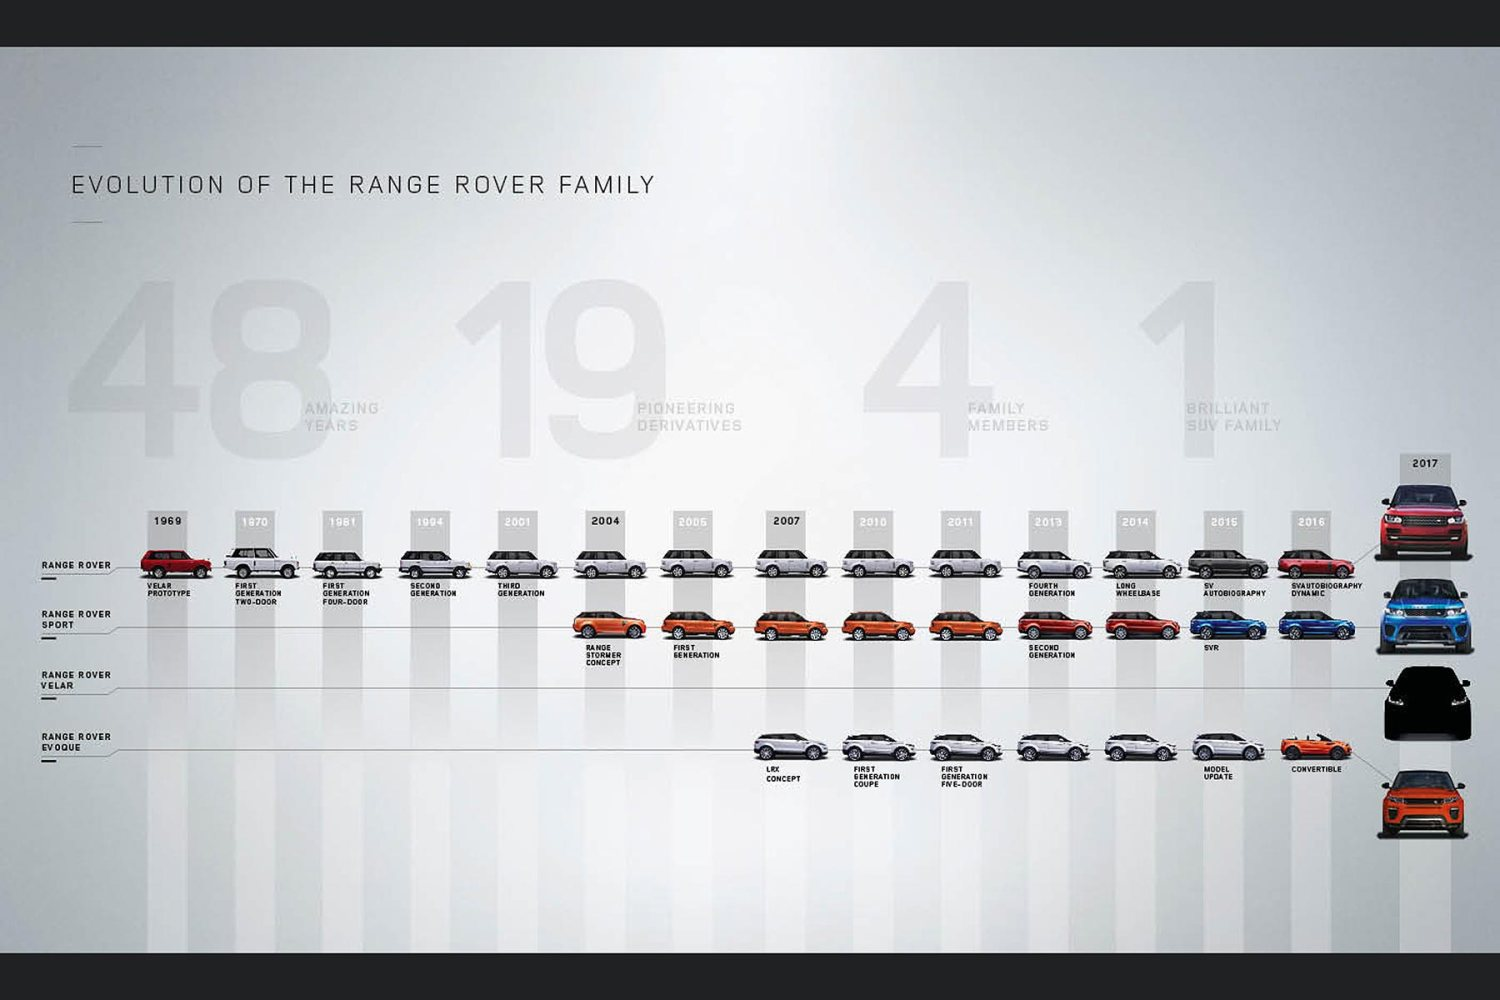 Range Rover family tree